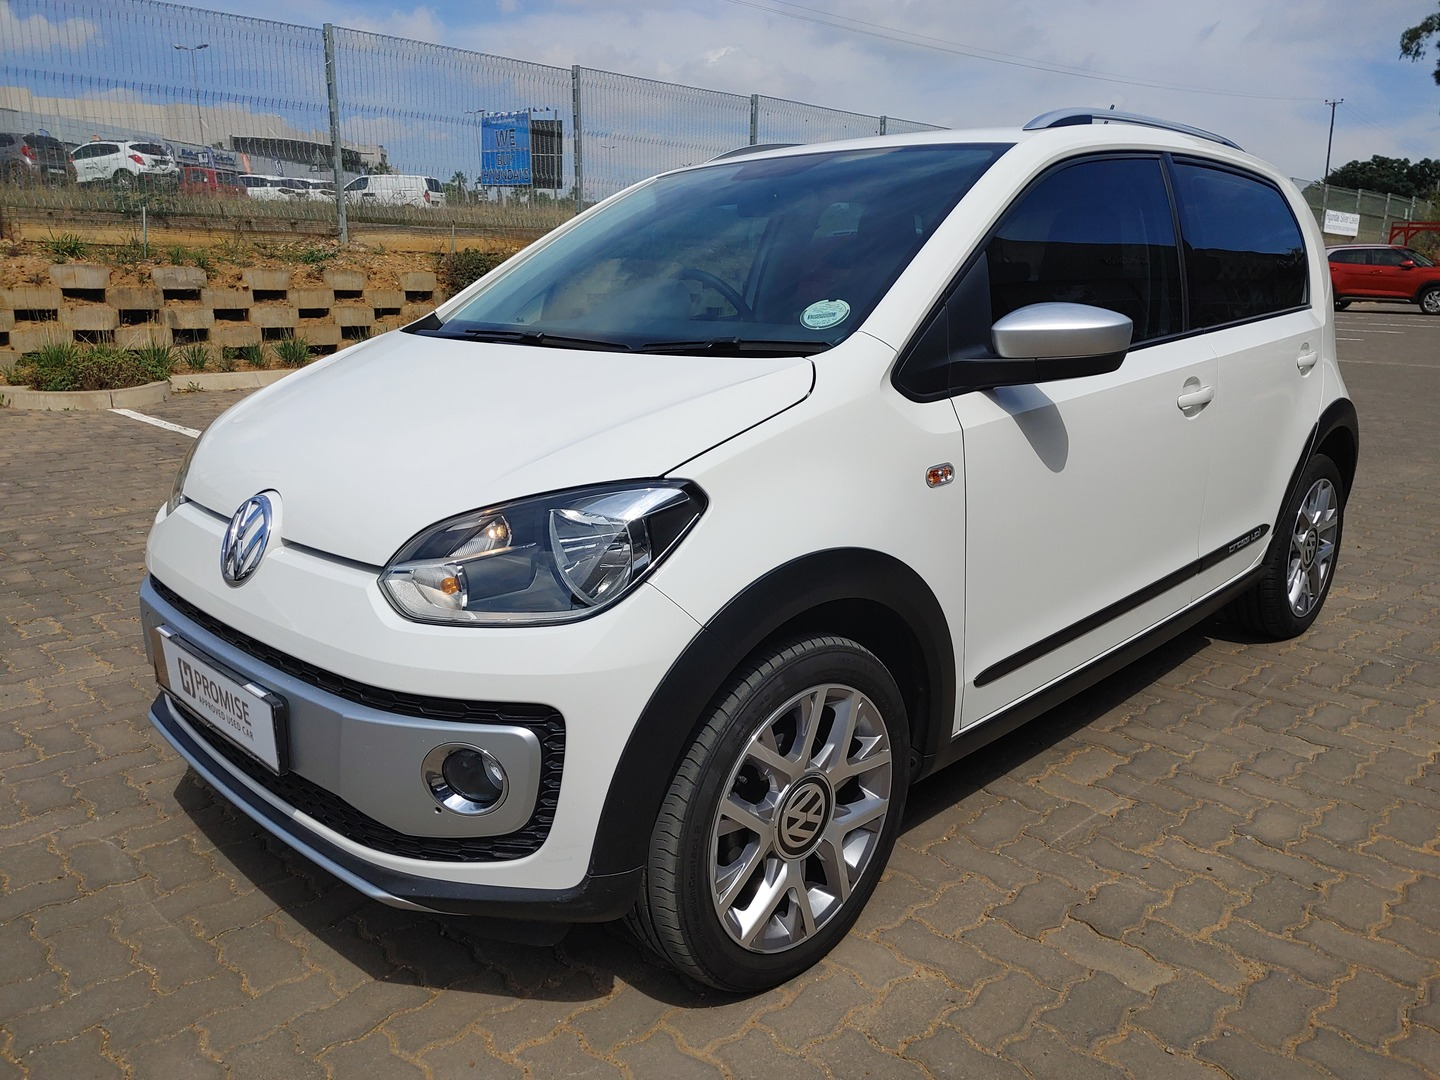 VOLKSWAGEN UP! 1.0 5DR Silver Lakes 2333905